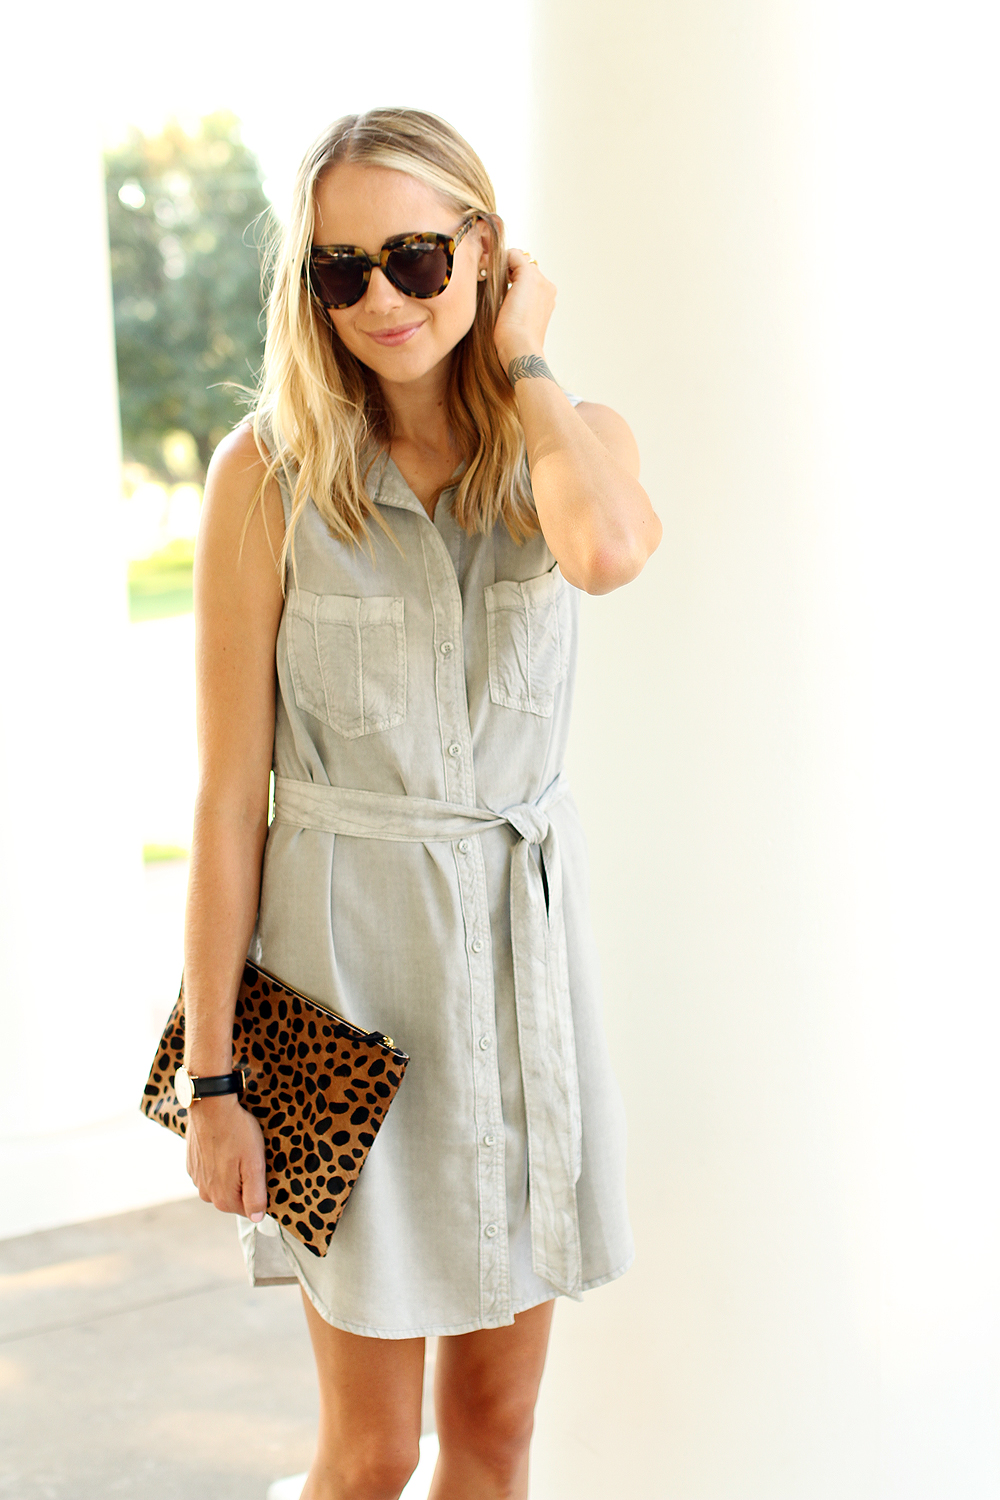 fashion-jackson-karen-walker-number-one-sunglasses-clare-v-leopard-clutch-sleeveless-tencel-shirt-dress